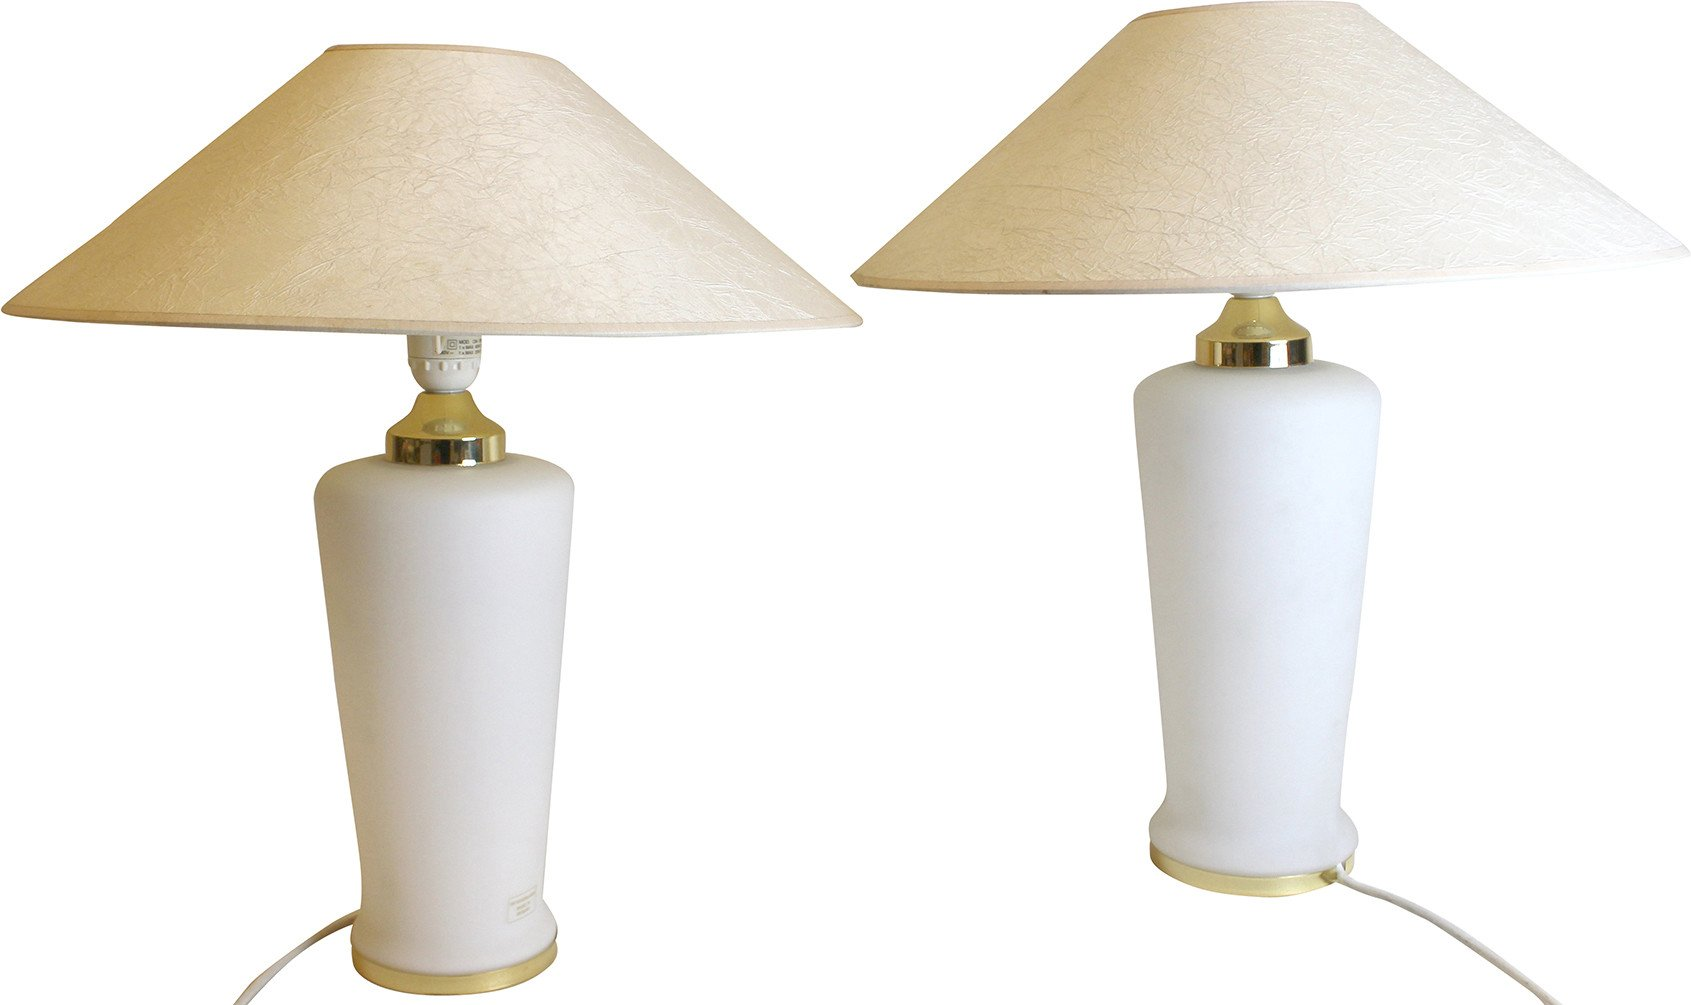 Pair of Table Lamps, Germany, 1990s